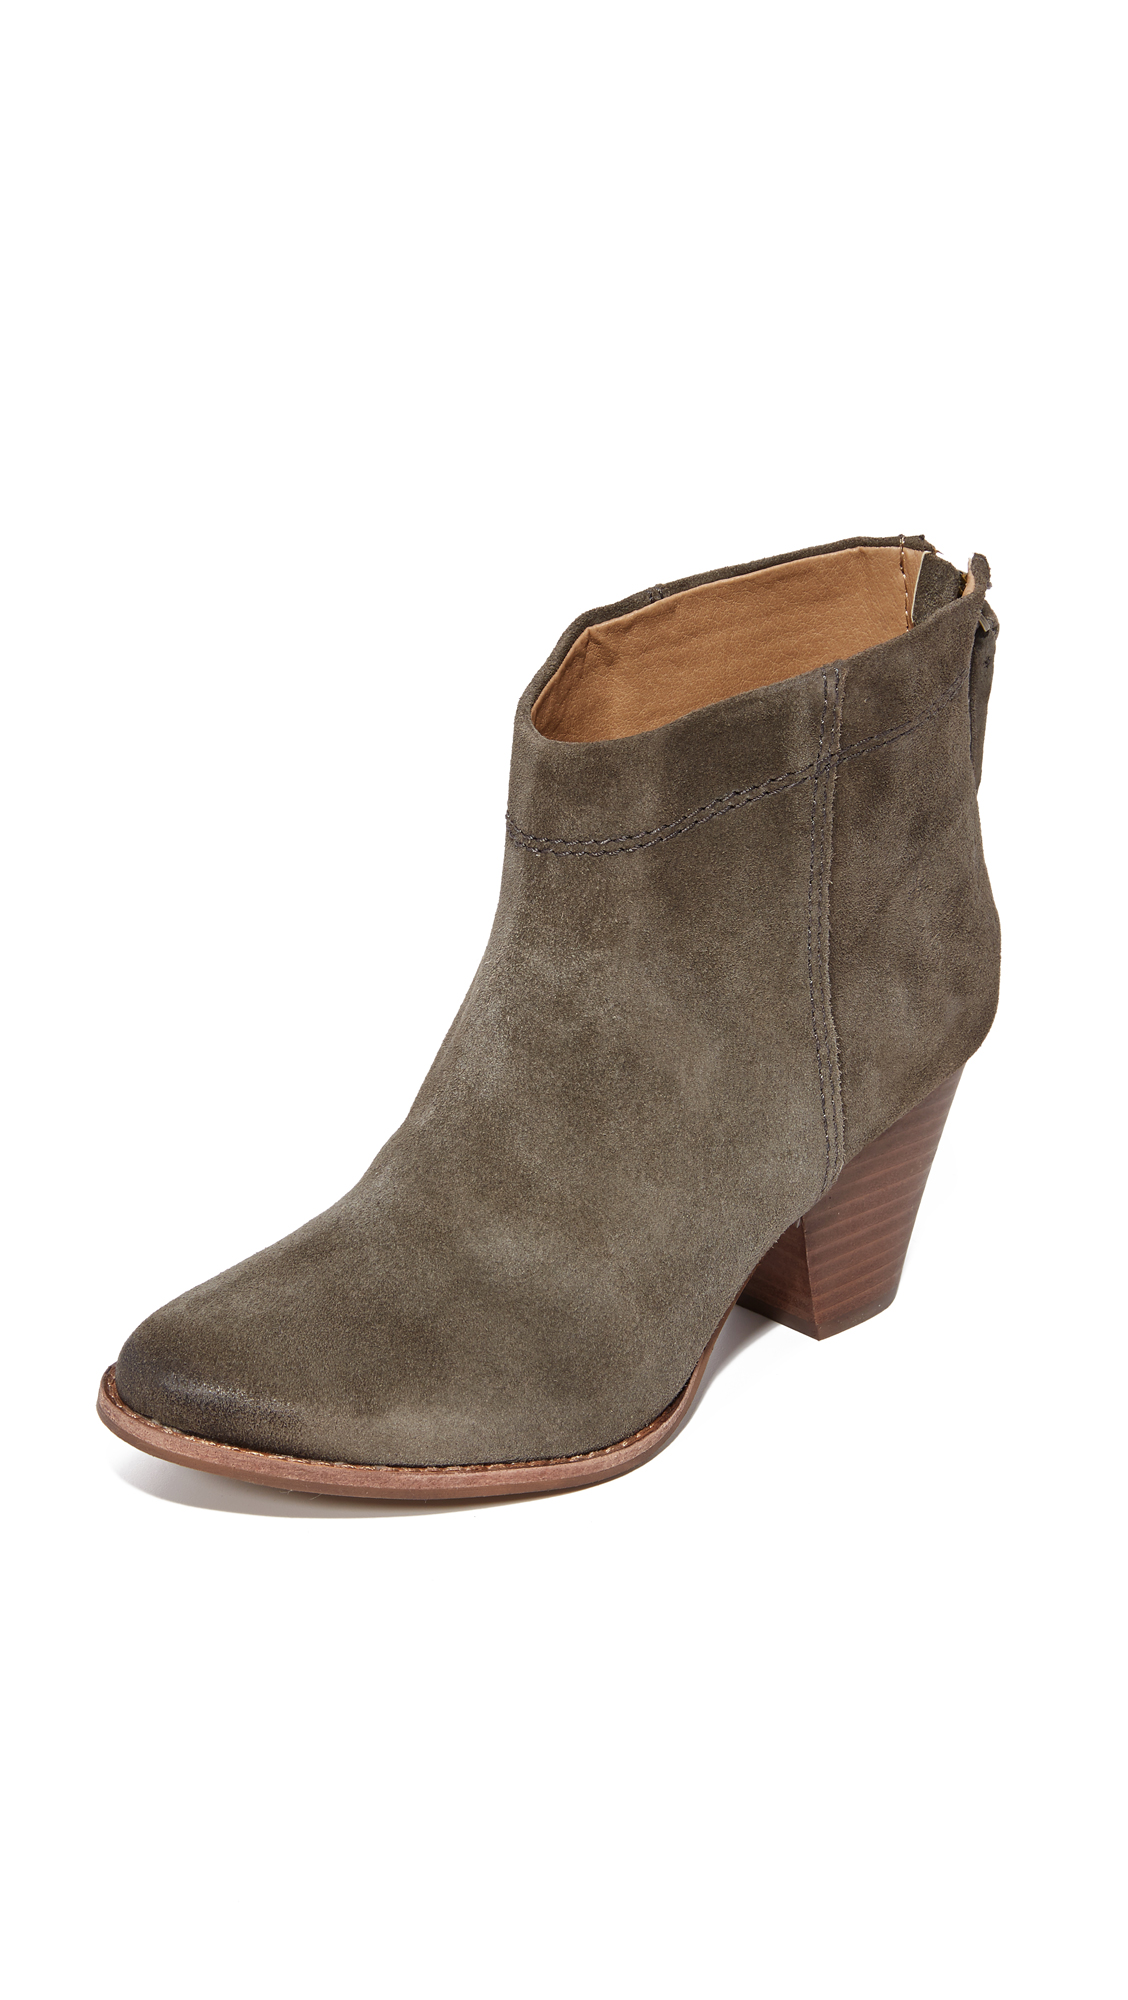 Photo of Splendid Ryebrooke Booties Smoke - Splendid online